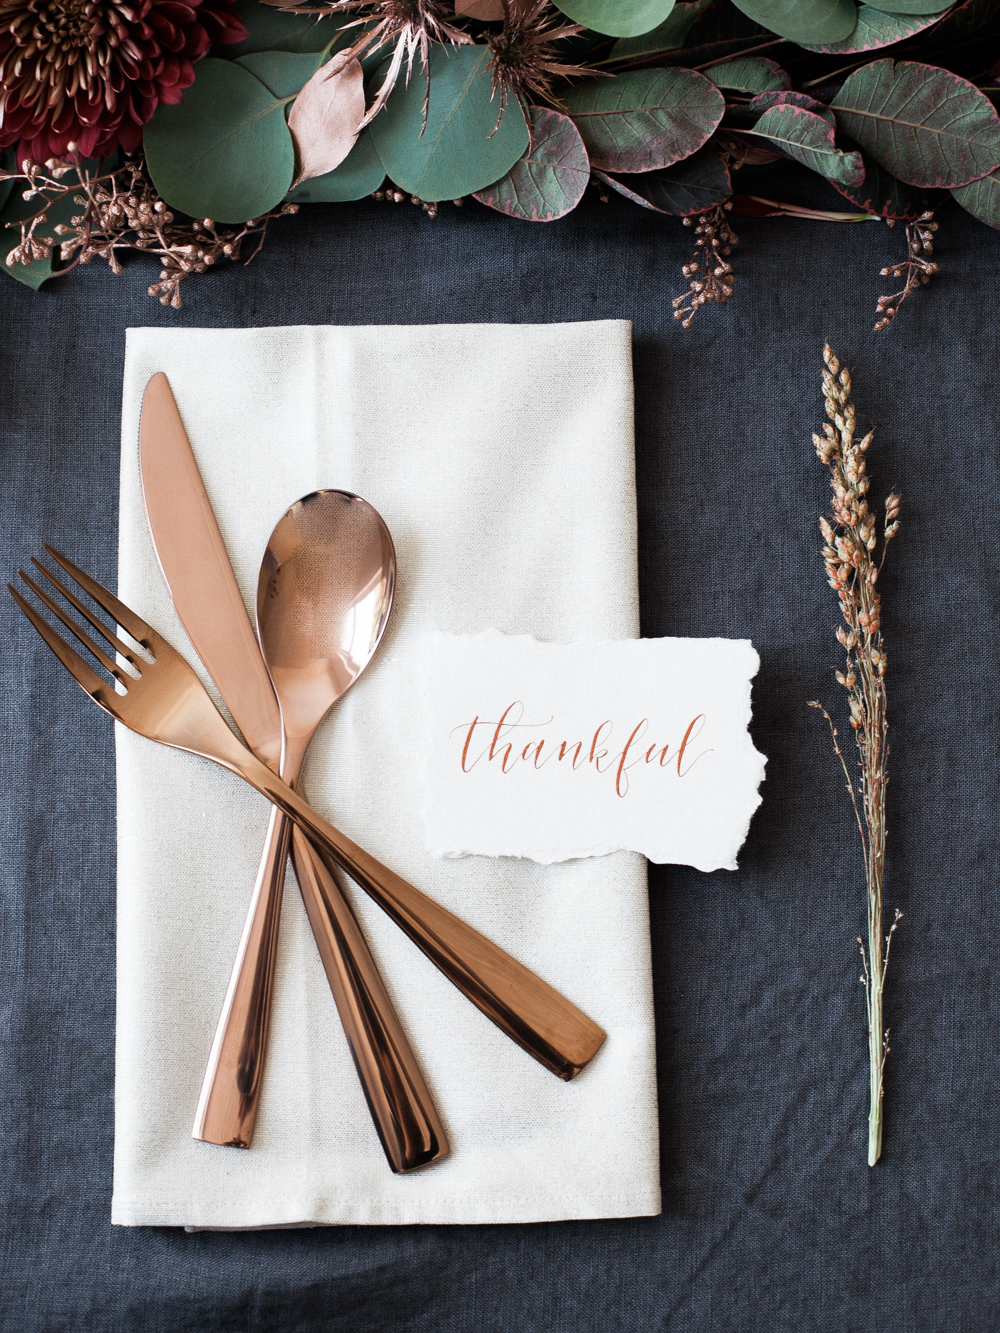 Simple & Elegant Thanksgiving Inspiration - Lindsey Brunk